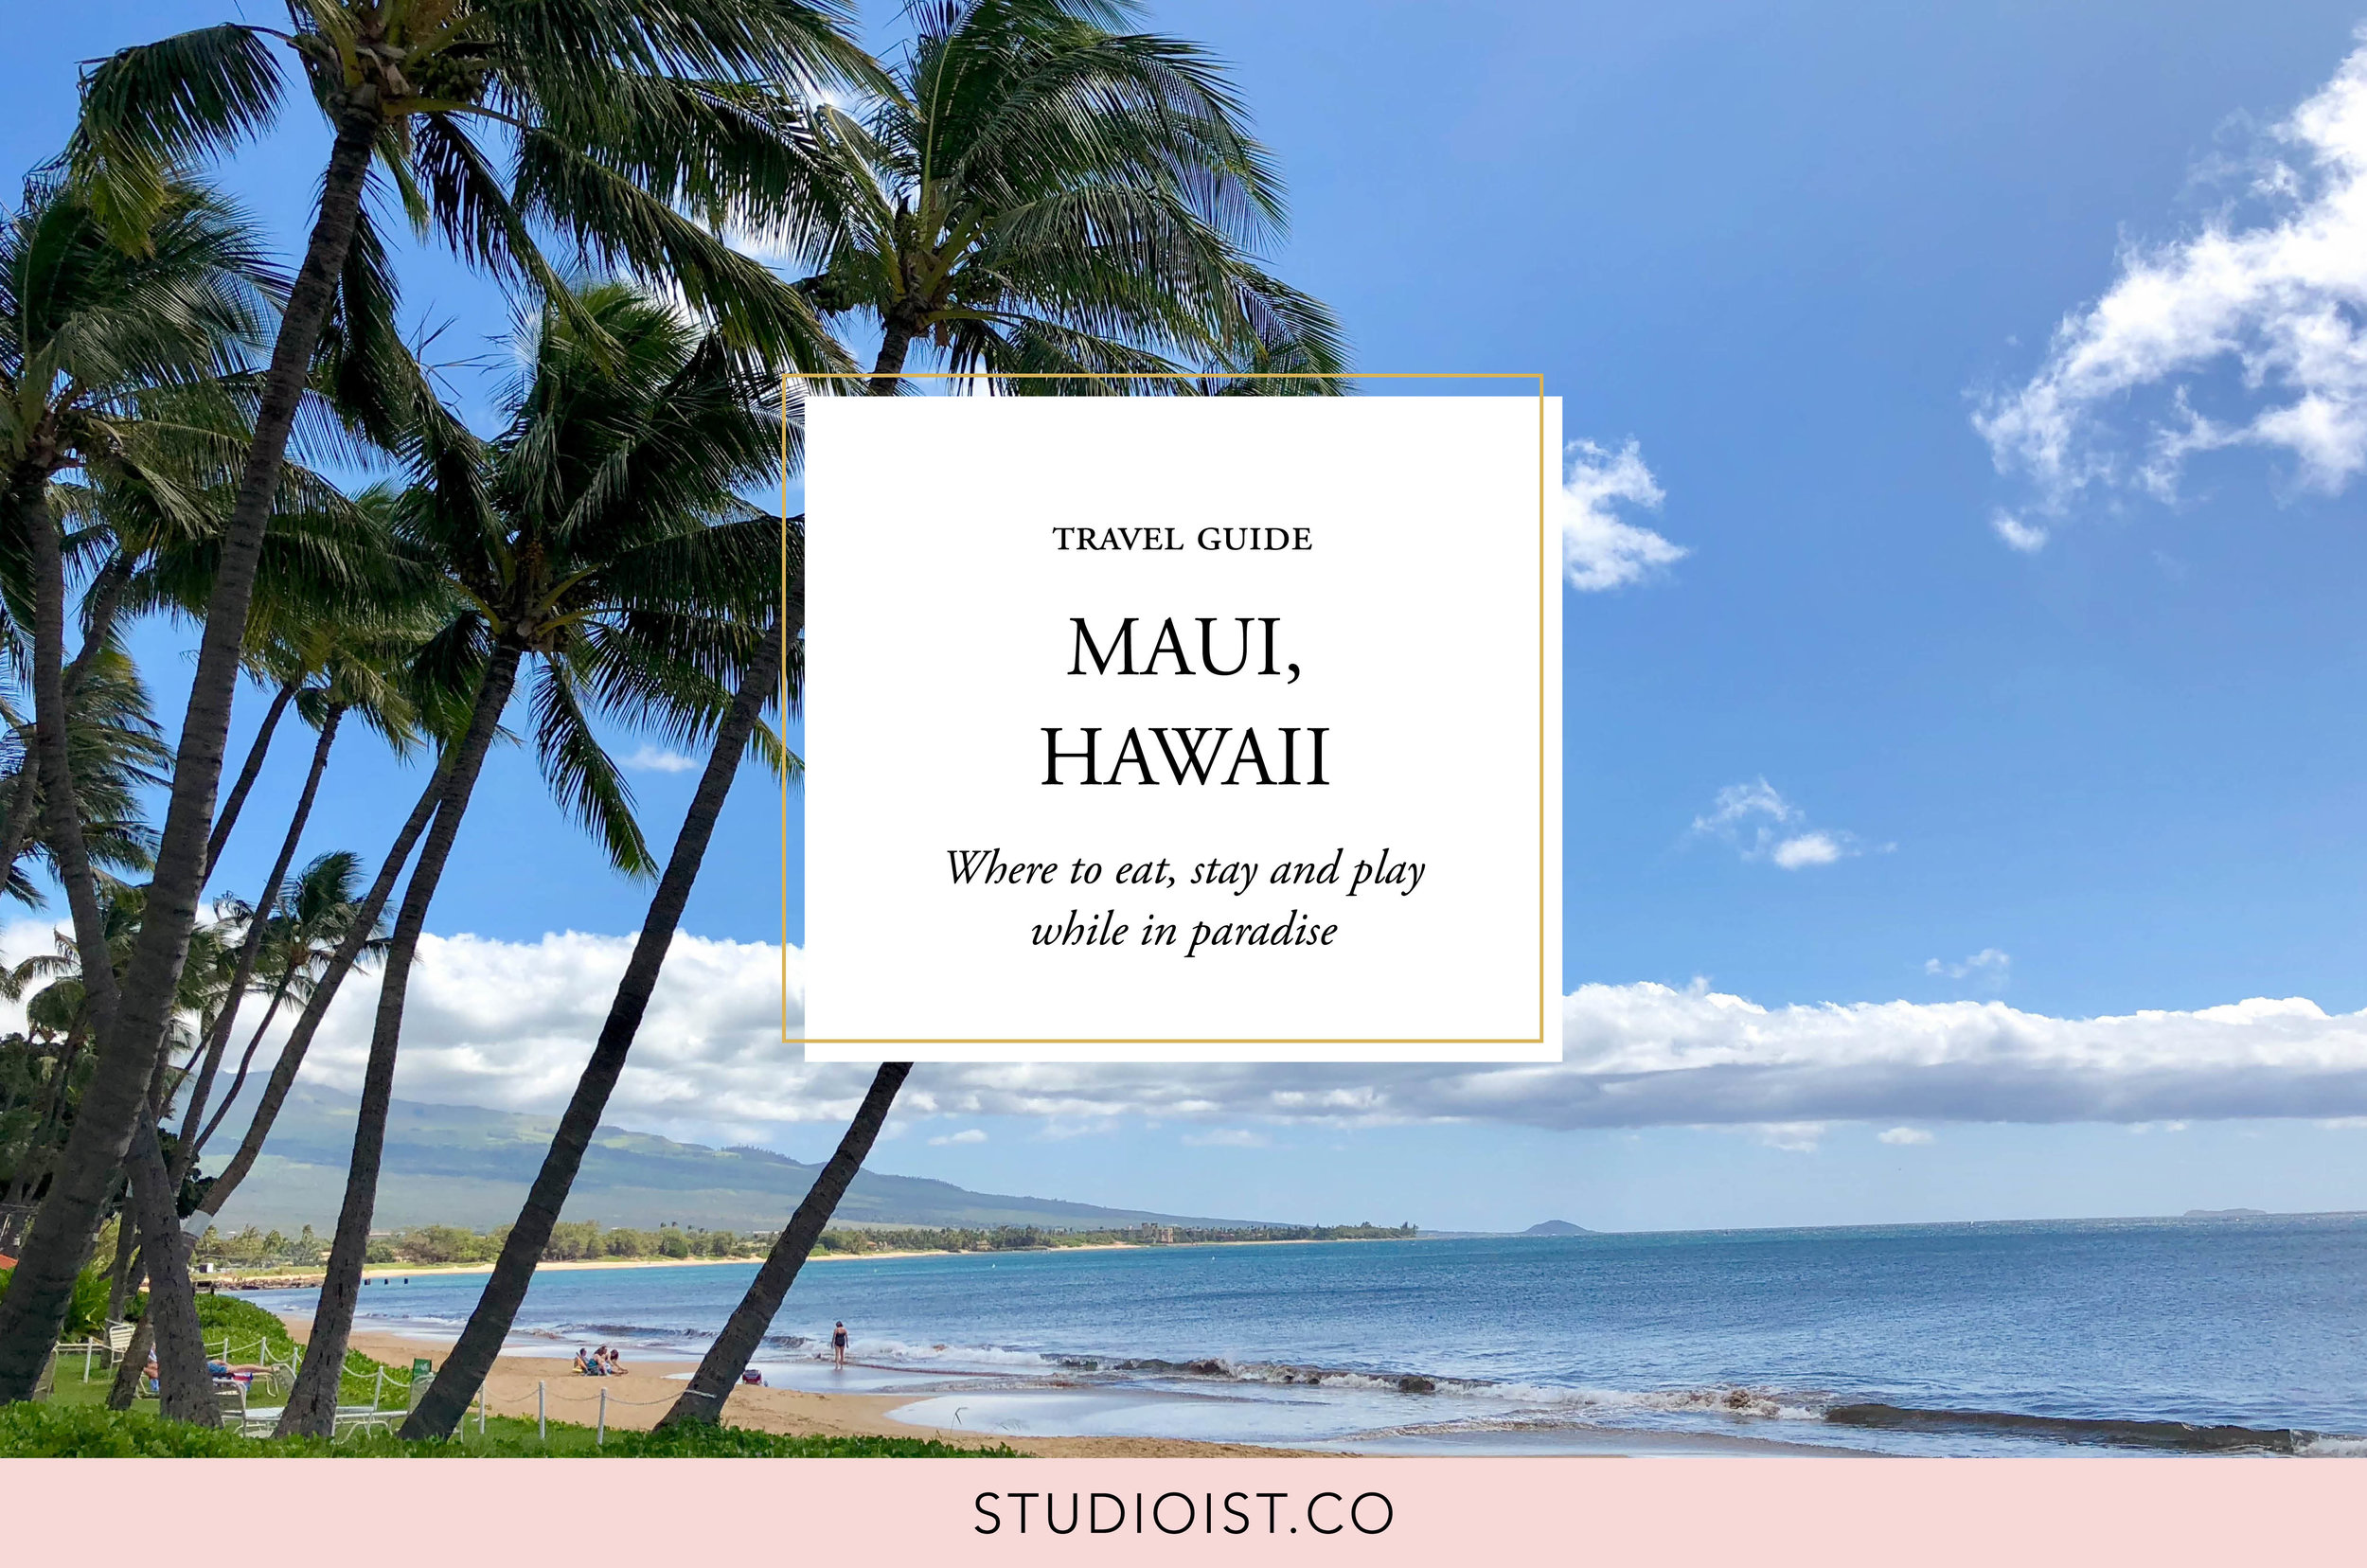 Studioist_Travel Cover Photos_Maui Guide.jpg